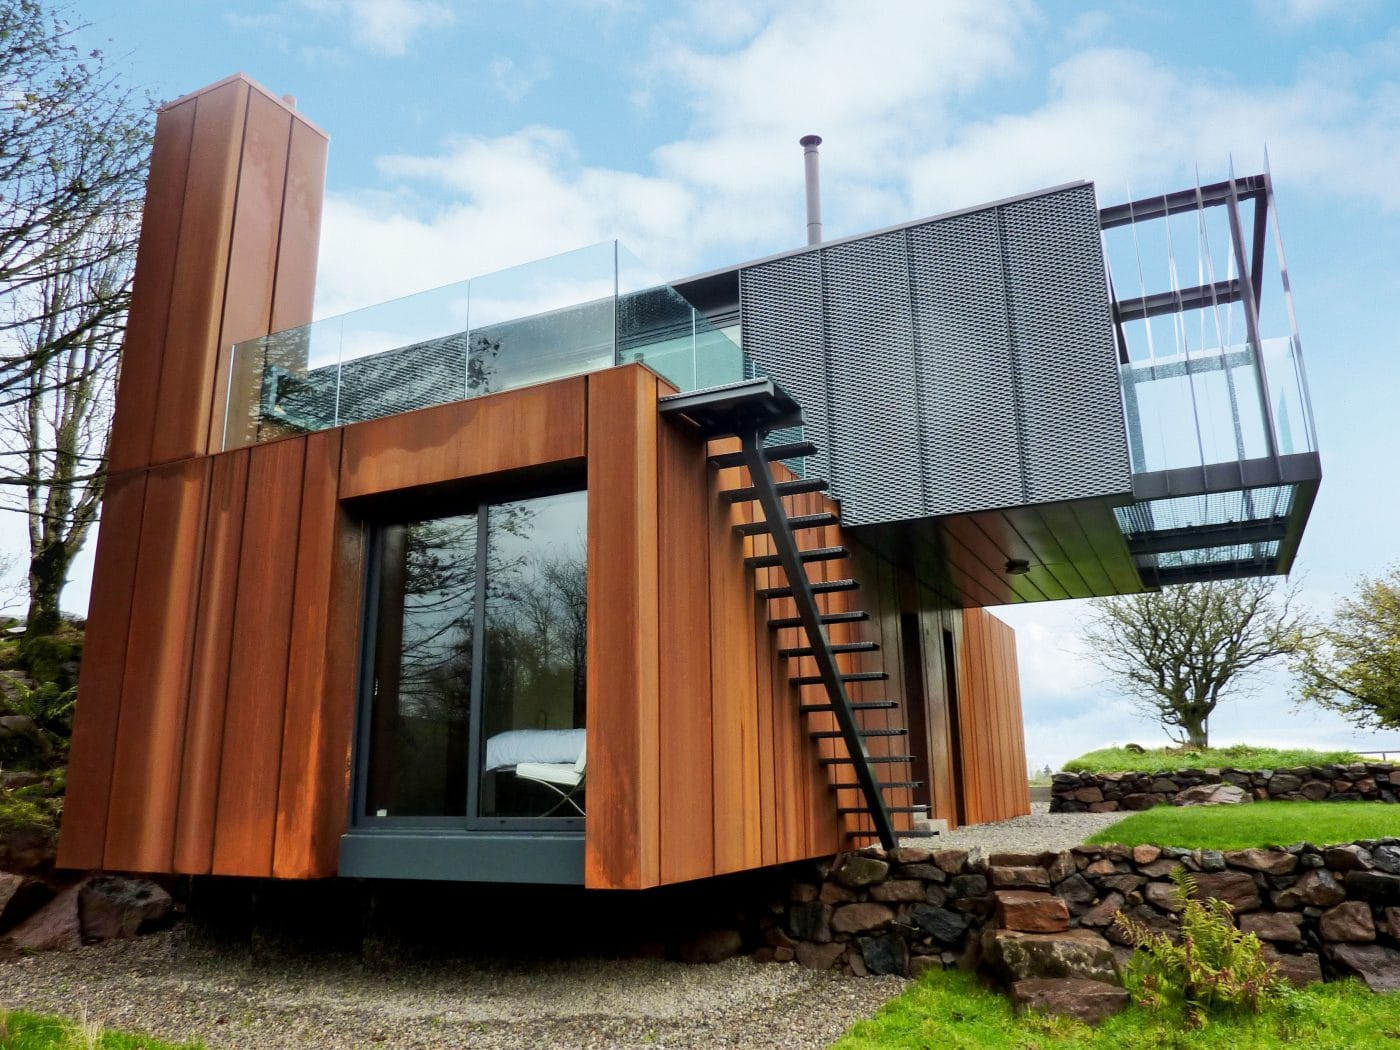 Grand designs shipping container home by patrick bradley for Shipping container house plans